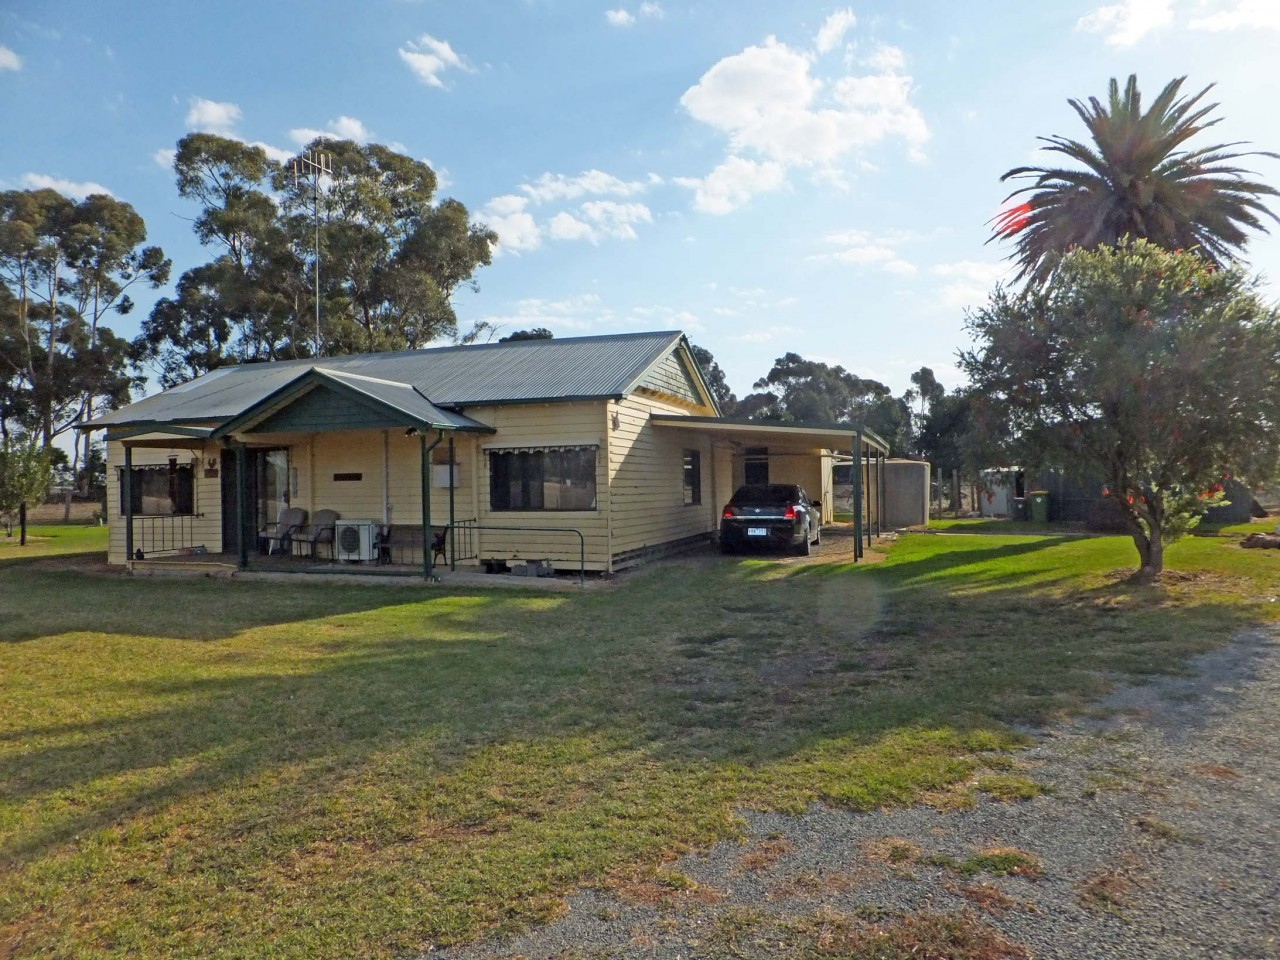 Farm for Sale - 68 Shaw Road, Stanhope VIC - Farm Property